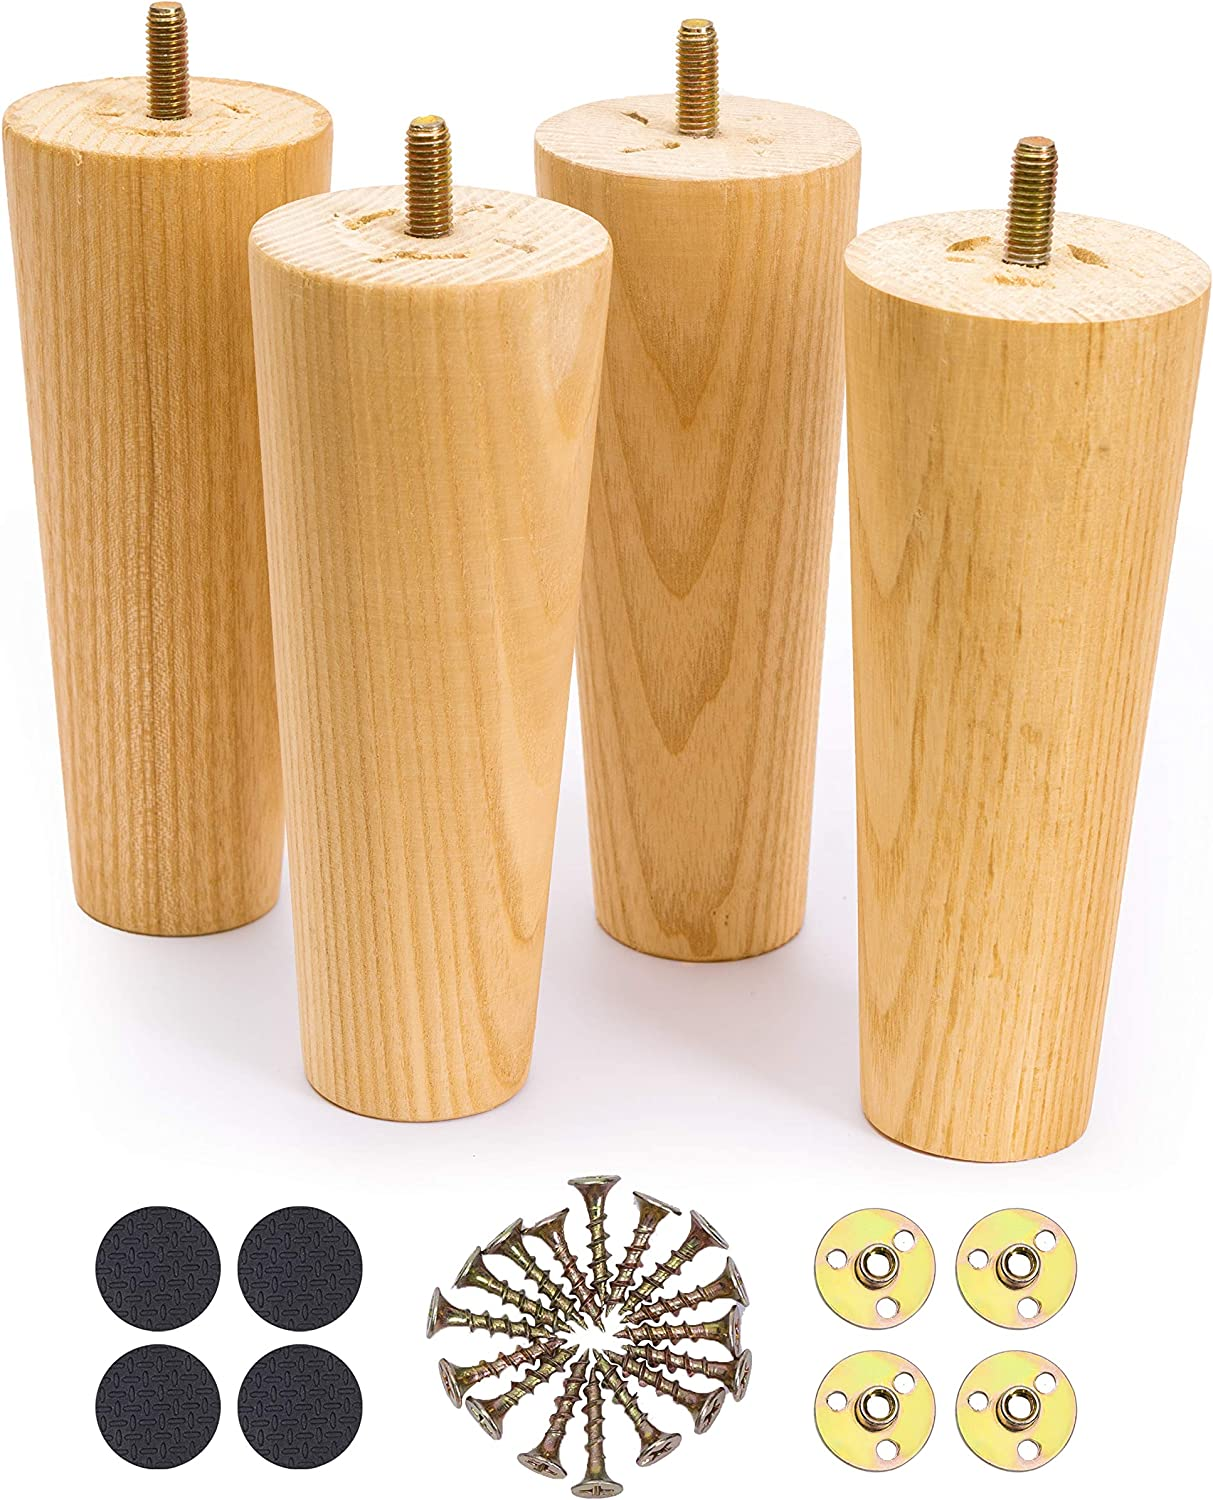 WOODINNO Furniture Legs 6 Inch Replacement for Mid Century Table Dresser, Desk, Couch, Chair Cabinet Sofa | Modern Tapered Round Feet Set of 4 | Raiser Painted Ash Wooden Feets | Clear Coat